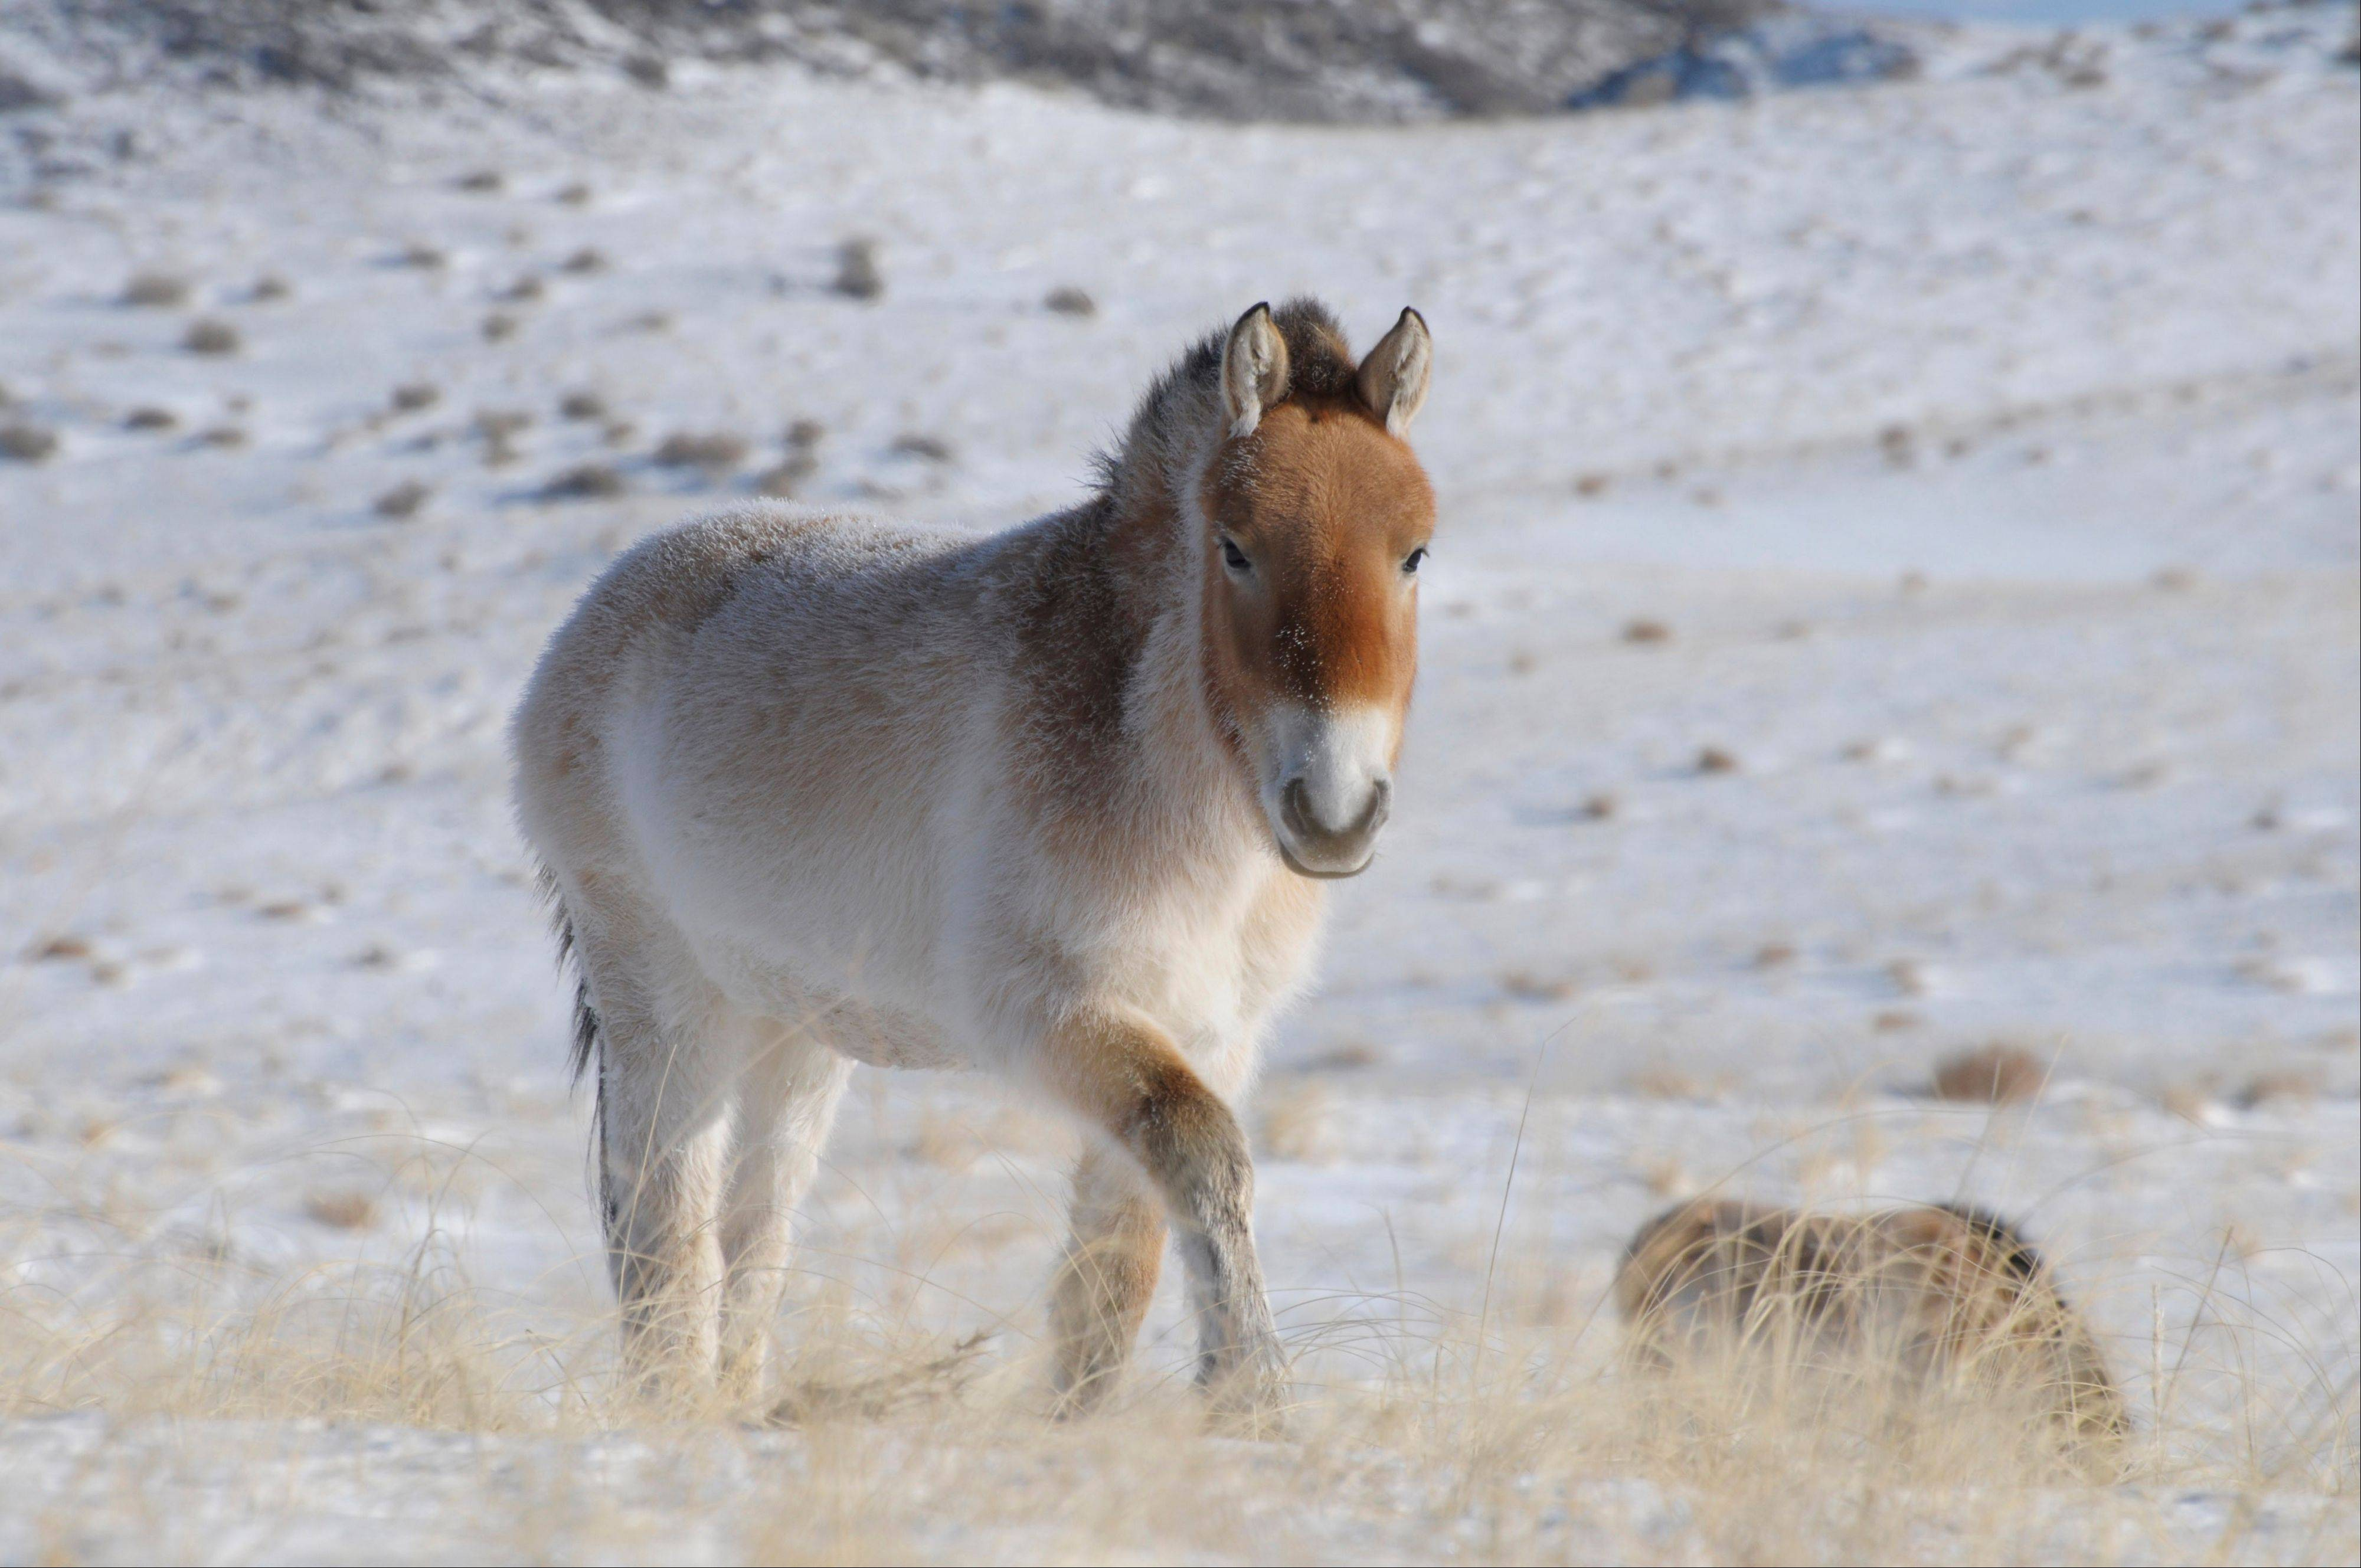 In this January 2010 photo provided by the journal Nature via Przewalski�s Horse Association, a Przewalski�s horse is shown in Khomyntal, western Mongolia, in one of three reintroduction sites. From a tiny fossil bone found in the frozen Yukon, scientists have deciphered the genetic code of an ancient horse about 700,000 years old � nearly 10 times older than any other animal that has had its genome mapped. The researchers also found new evidence that the endangered Przewalski�s horse, found in Mongolia and China, is the last surviving wild horse.